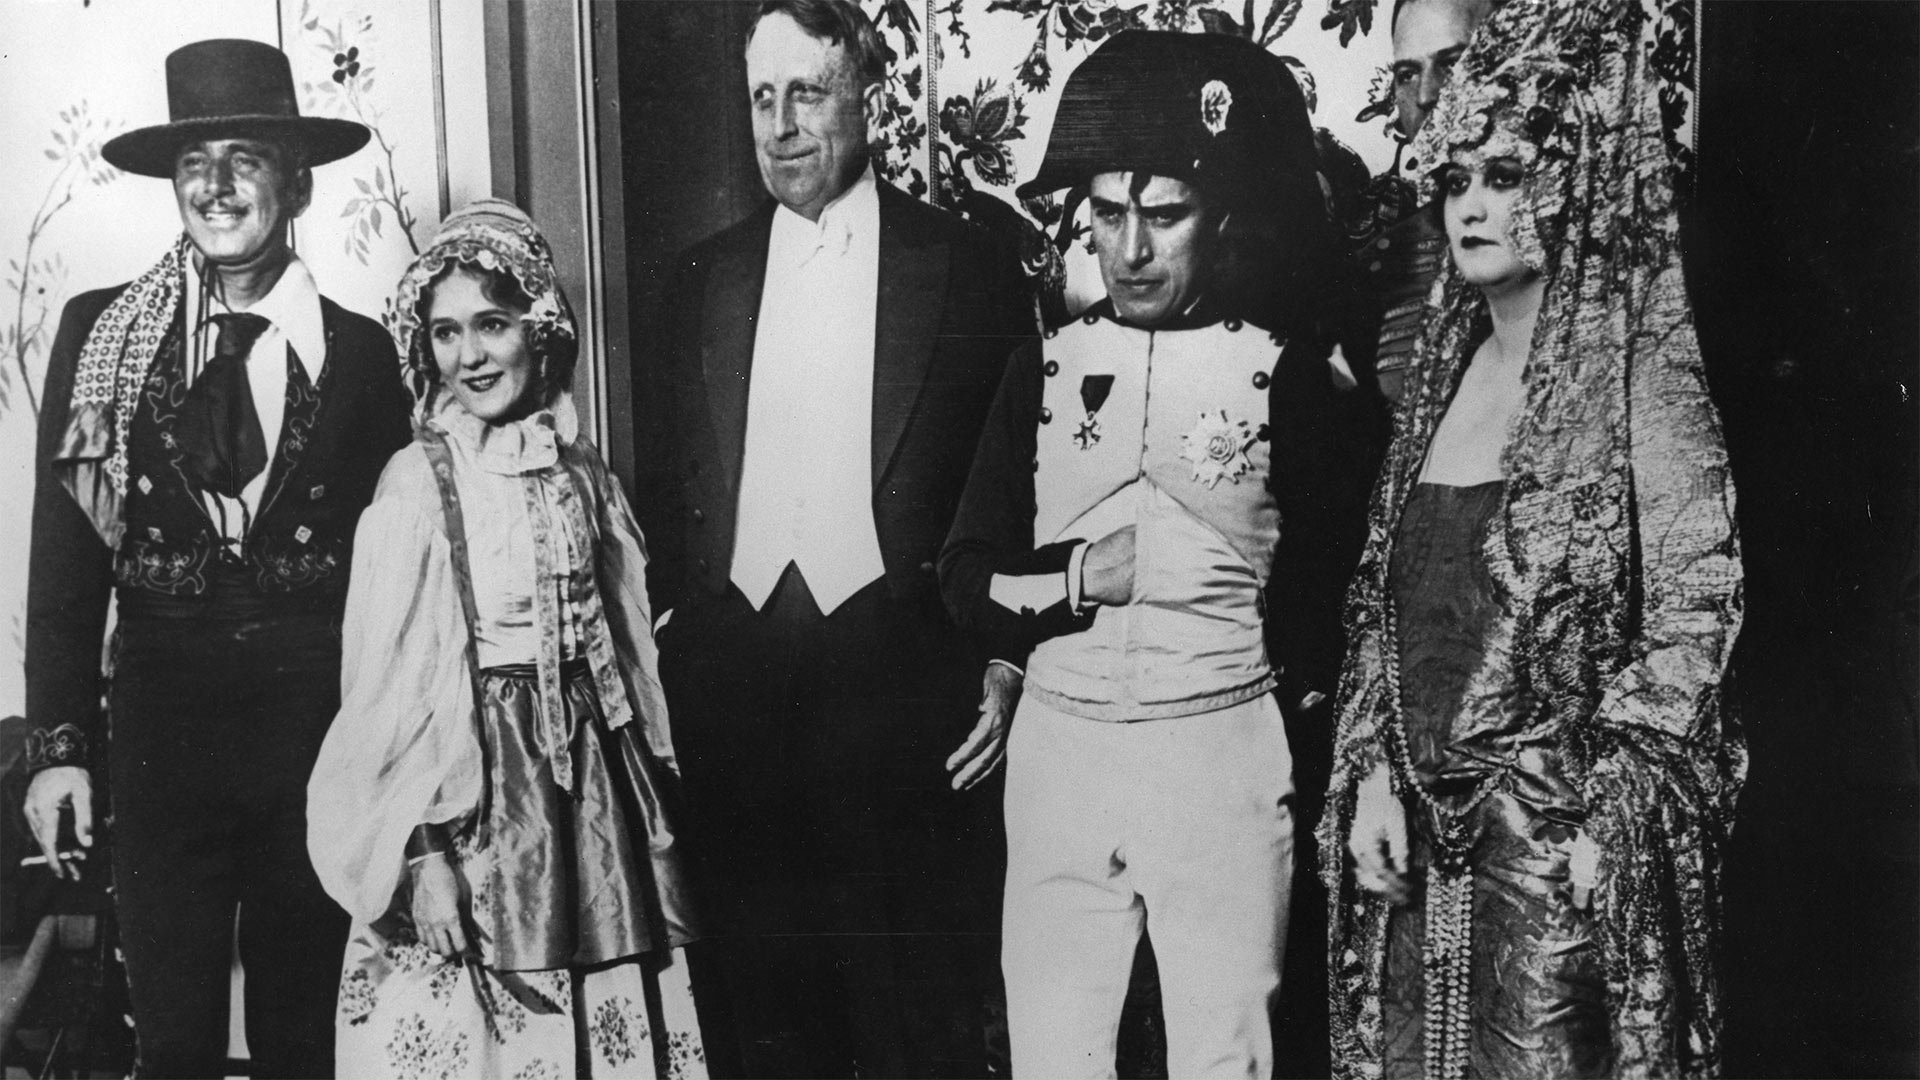 William Randolph Hearst (center in tuxedo) with party attendees (from left to right) Douglas Fairbanks, Mary Pickford, Charlie Chaplin and Princess Bibesco.